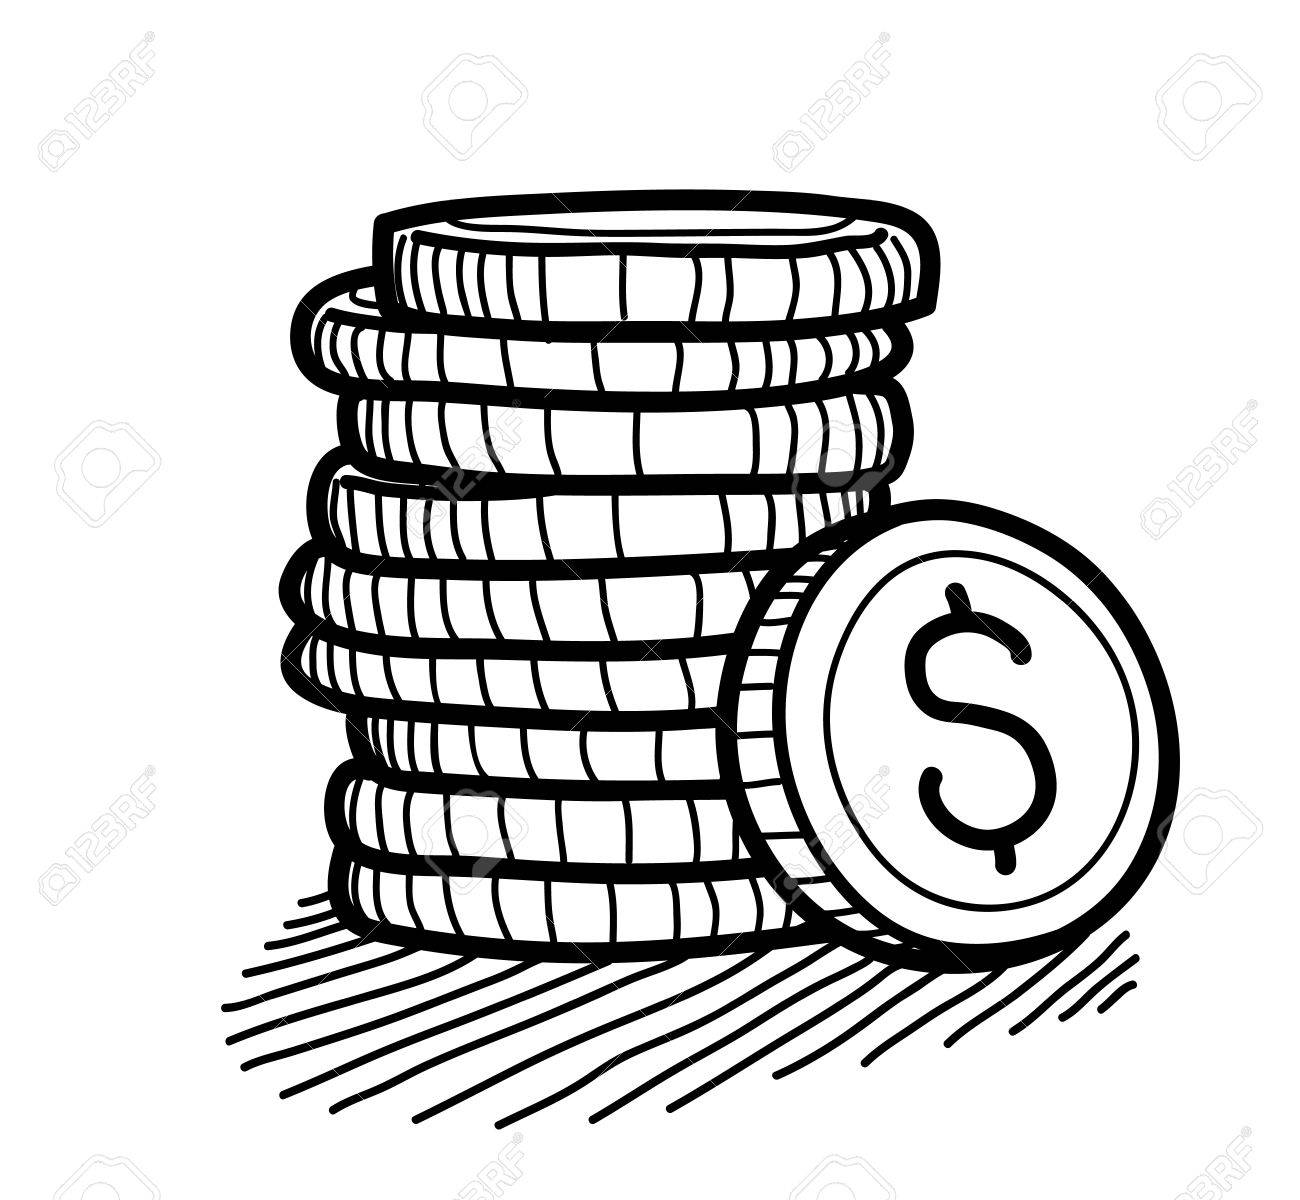 1300x1200 Stack Of Coins Doodle (Dollar), A Hand Drawn Vector Doodle